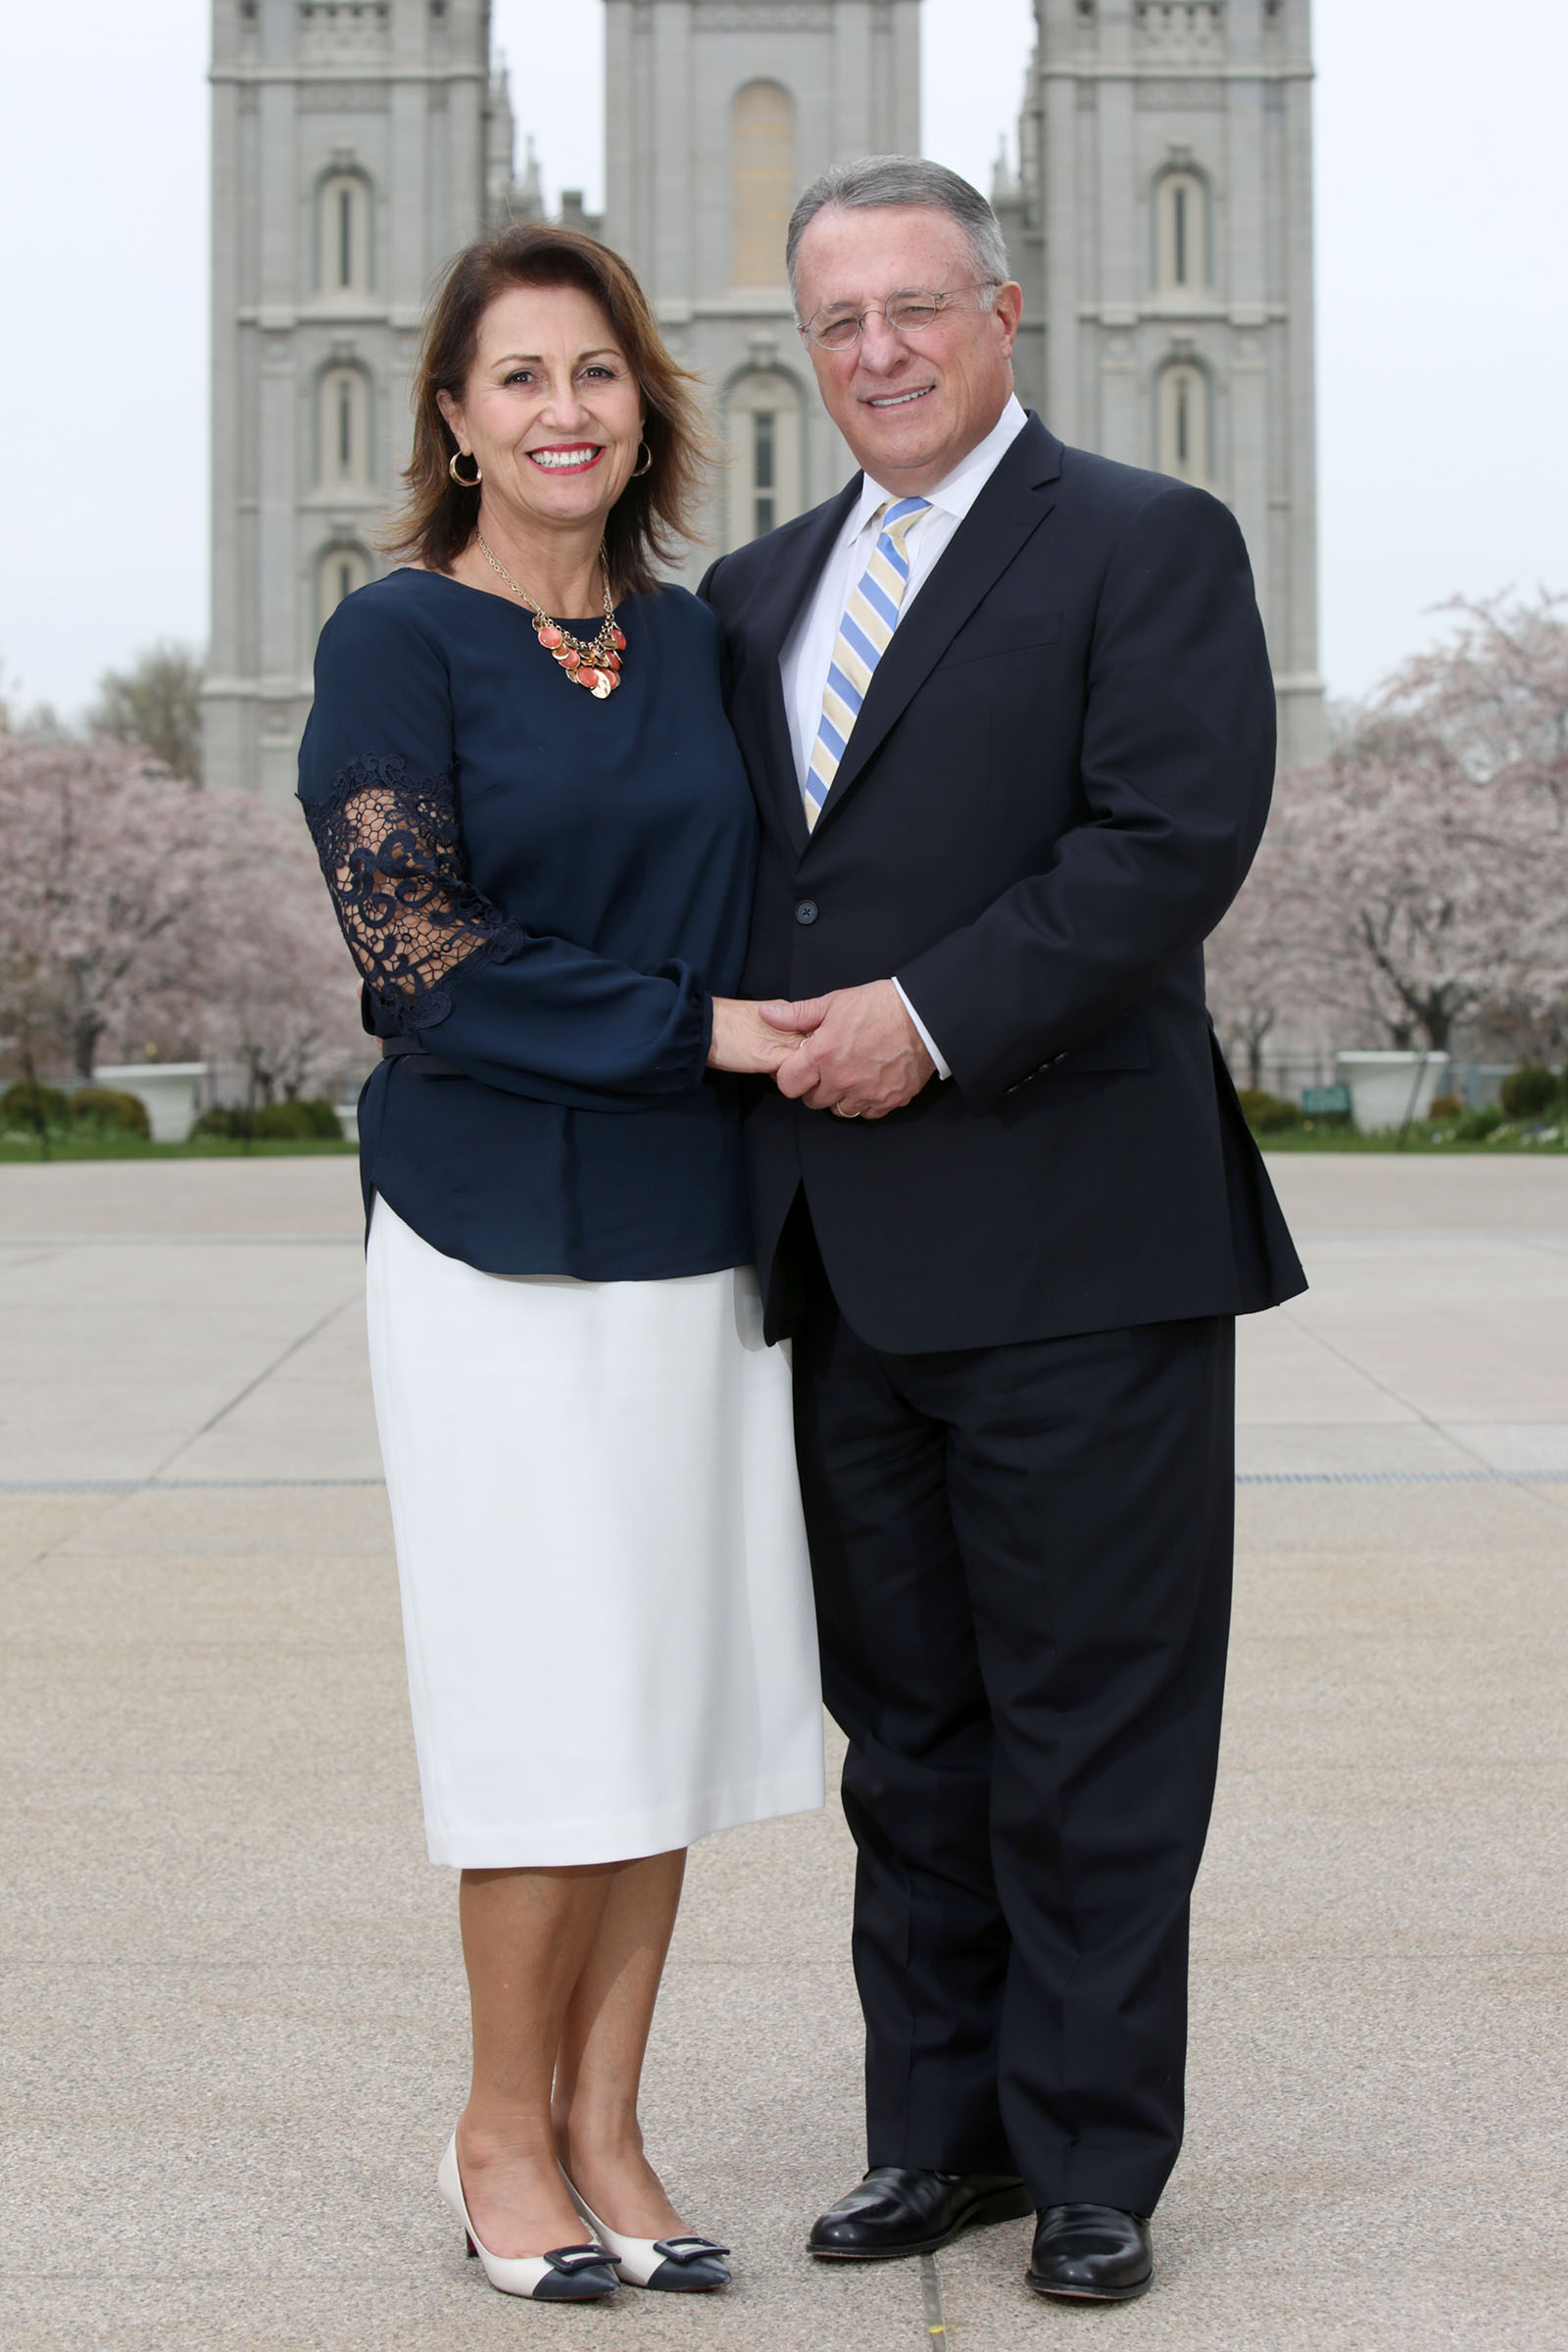 Sister Rosana Soares and Elder Ulisses Soares pose for a portrait outside of the Church Administration Building in Salt Lake City on Wednesday, April 4, 2018. In 2019, Elder Soares returned to the neighborhood of his youth on assignment.